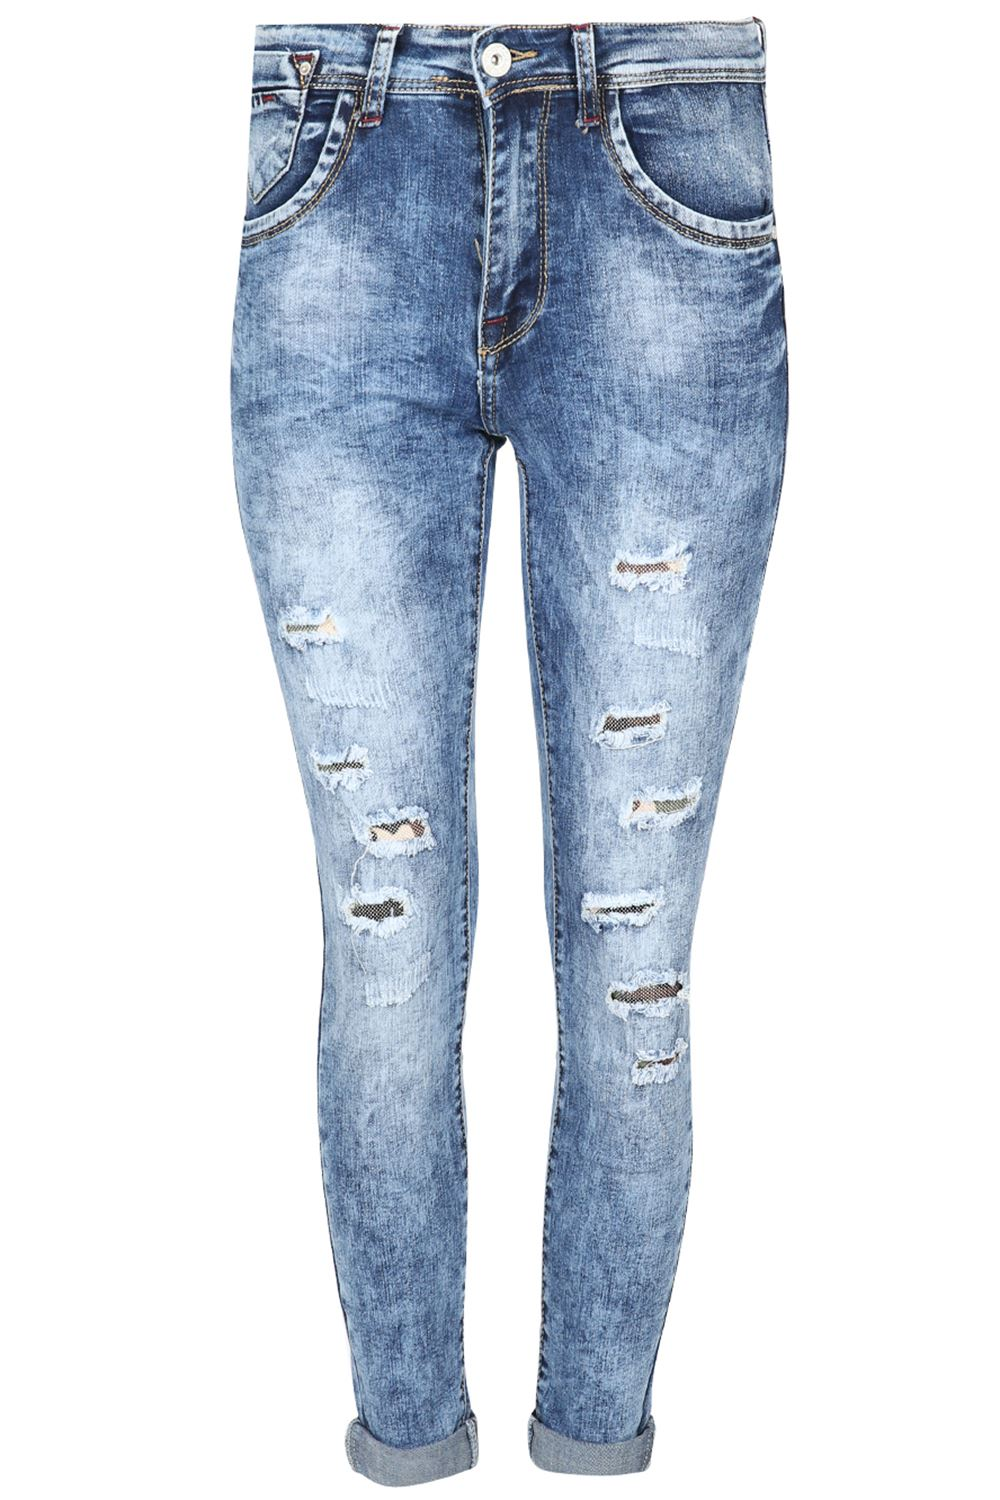 Find best dropshippers for UK ripped jeans for plus size women and buy cheap black sexy ripped jeans on Dhgate website with high quality & fast delivery to UK. Shop a wide range of brown ripped jeans at our online shop today! You will get a happy unexpected prize!